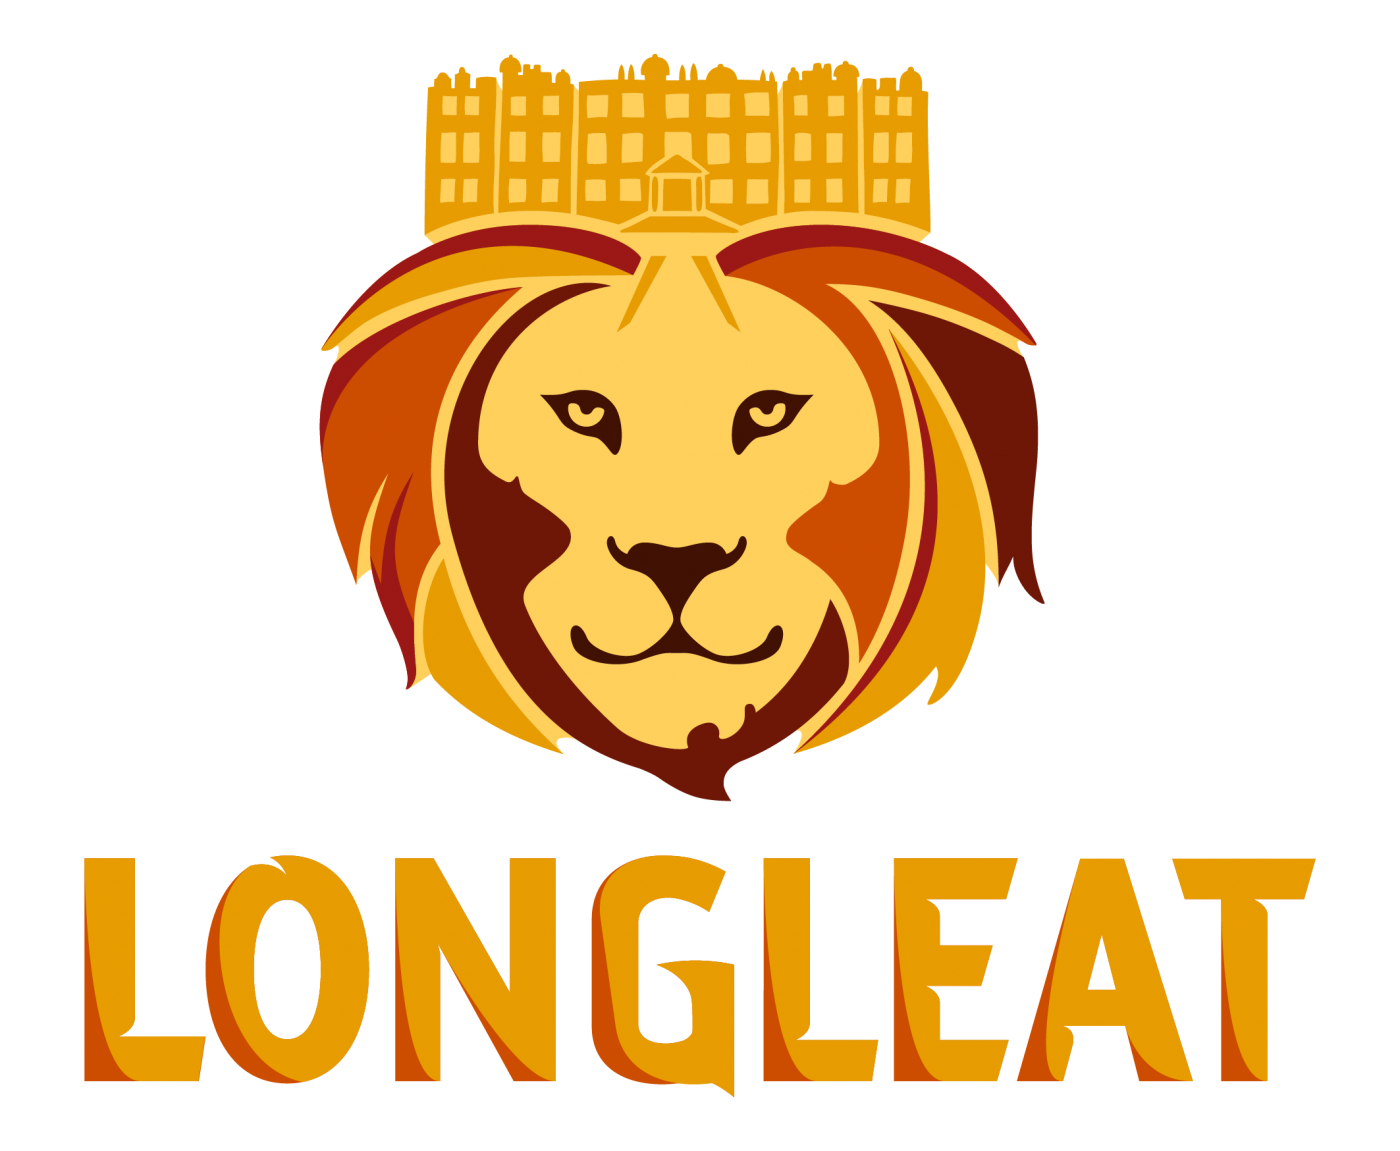 longleat_vertical_c.png